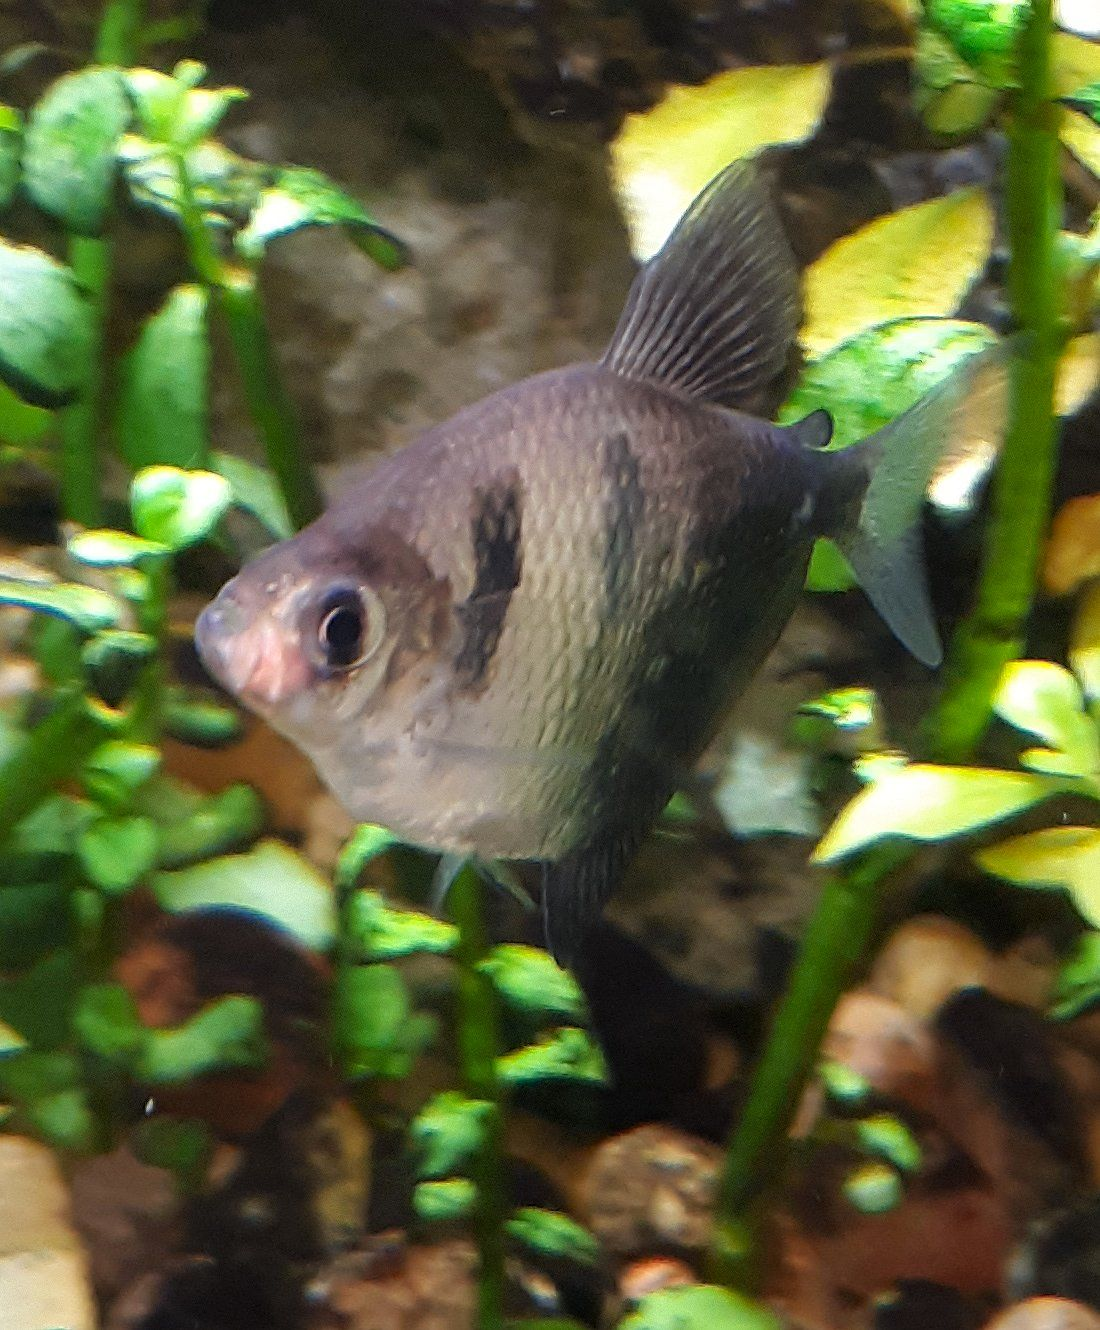 Black_Tetra_Mouth_Growth.jpg